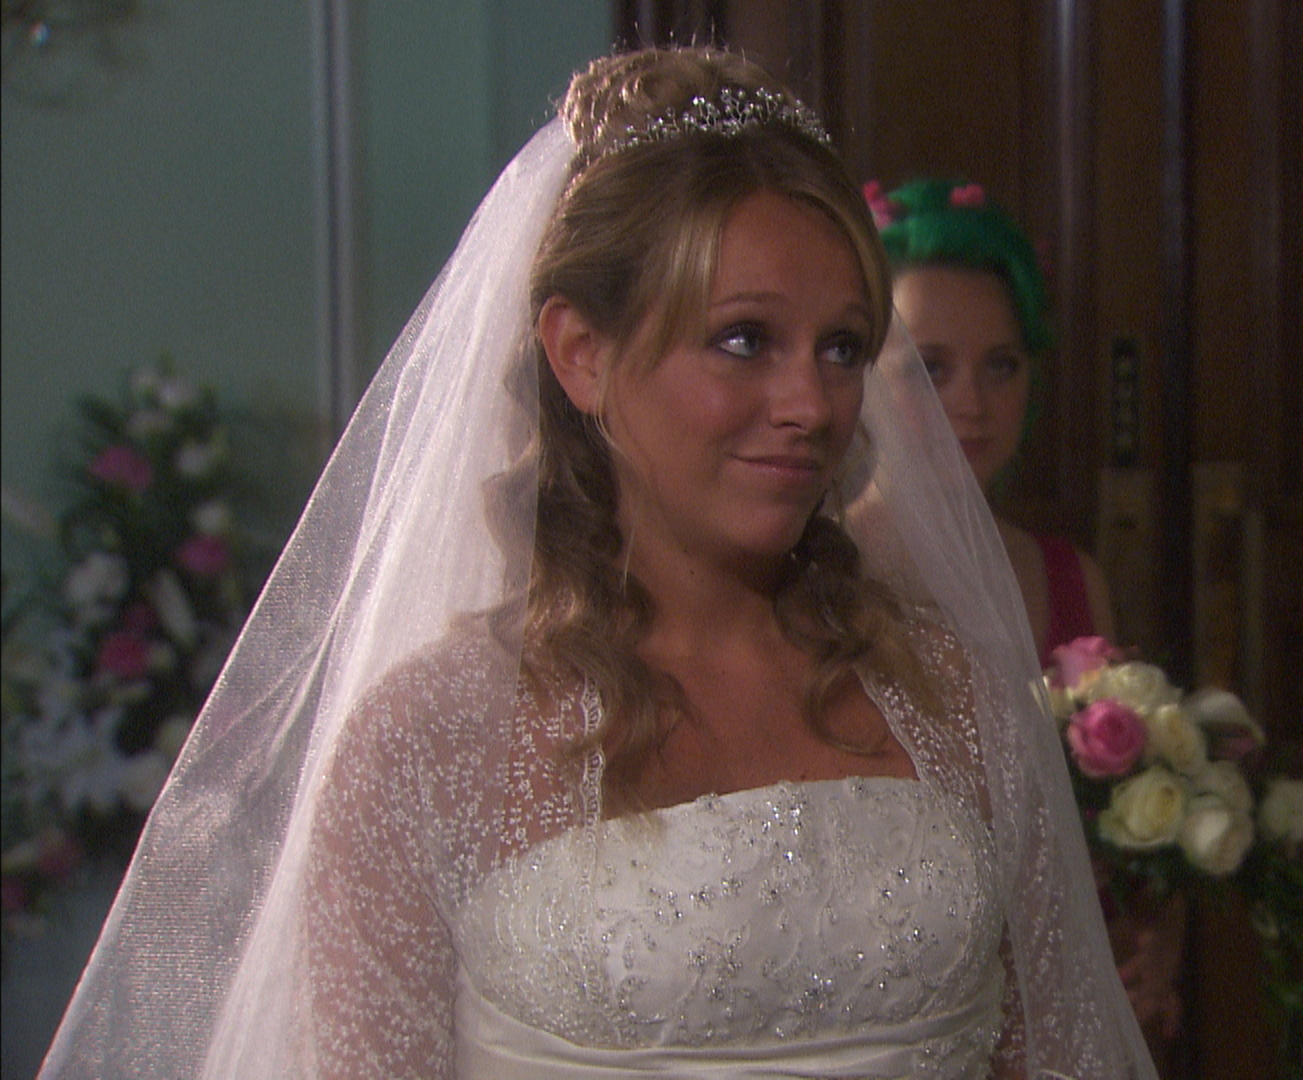 Doctors' Sophie: 'Cherry is a real bridezilla'